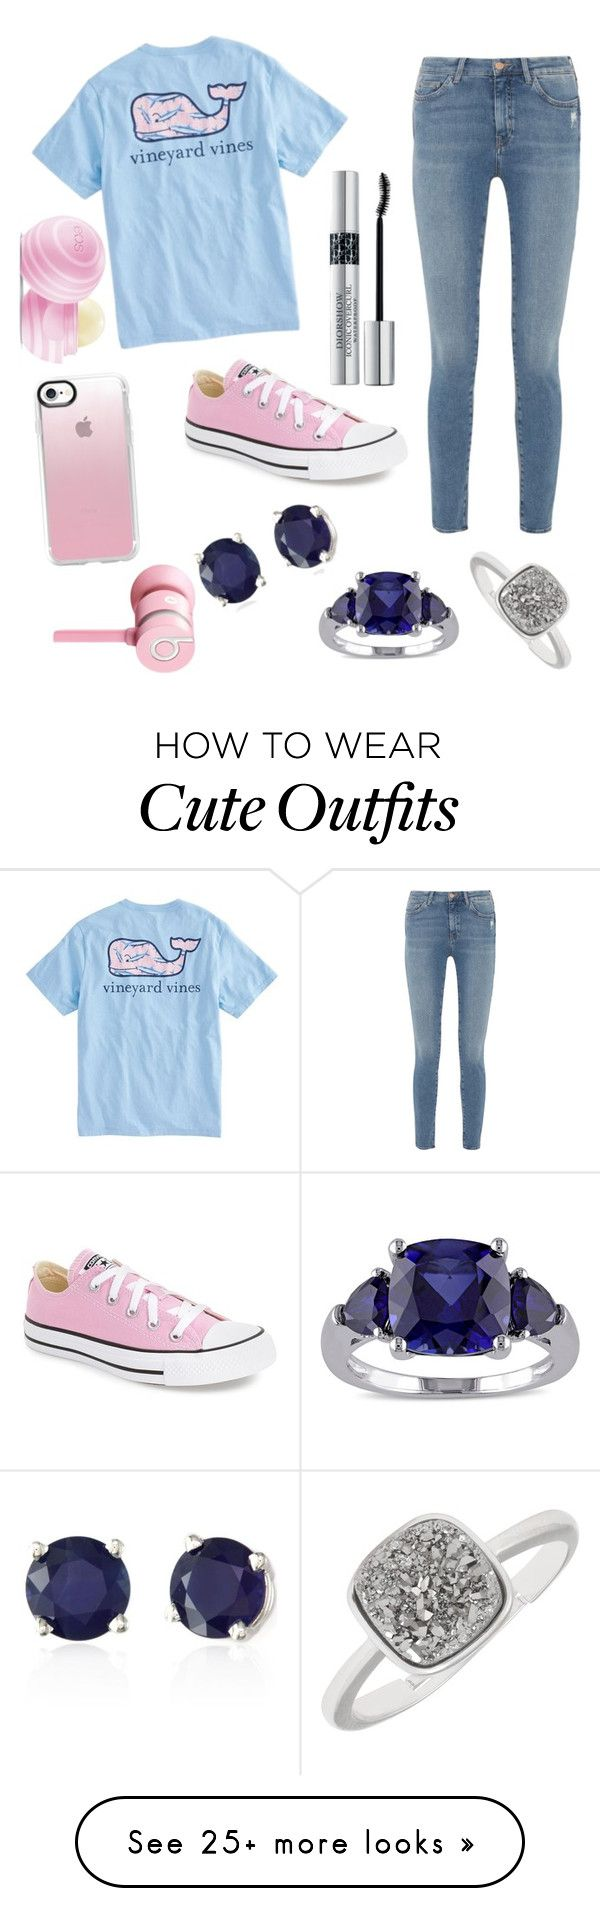 """""""Cute outfits for school"""" by amiyafulton037 on Polyvore featuring Vineyard Vines, M.i.h Jeans, Converse, Effy Jewelry, Miadora, Casetify, Christian Di…"""